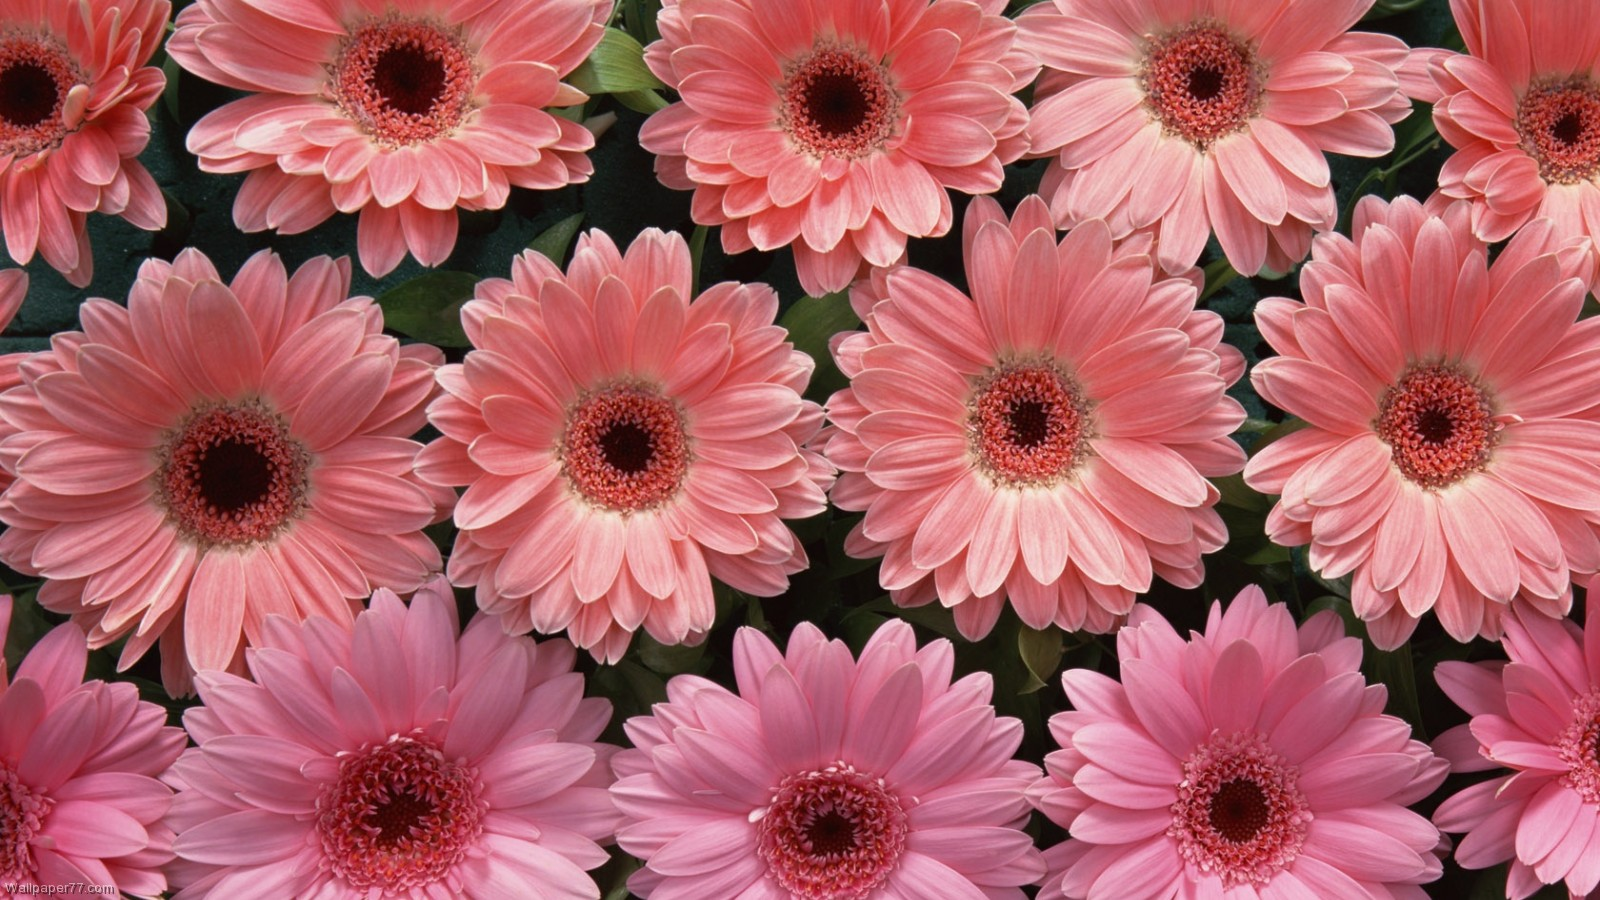 Pink Flowers Desktop Wallpaper 12 Widescreen Wallpaper ...